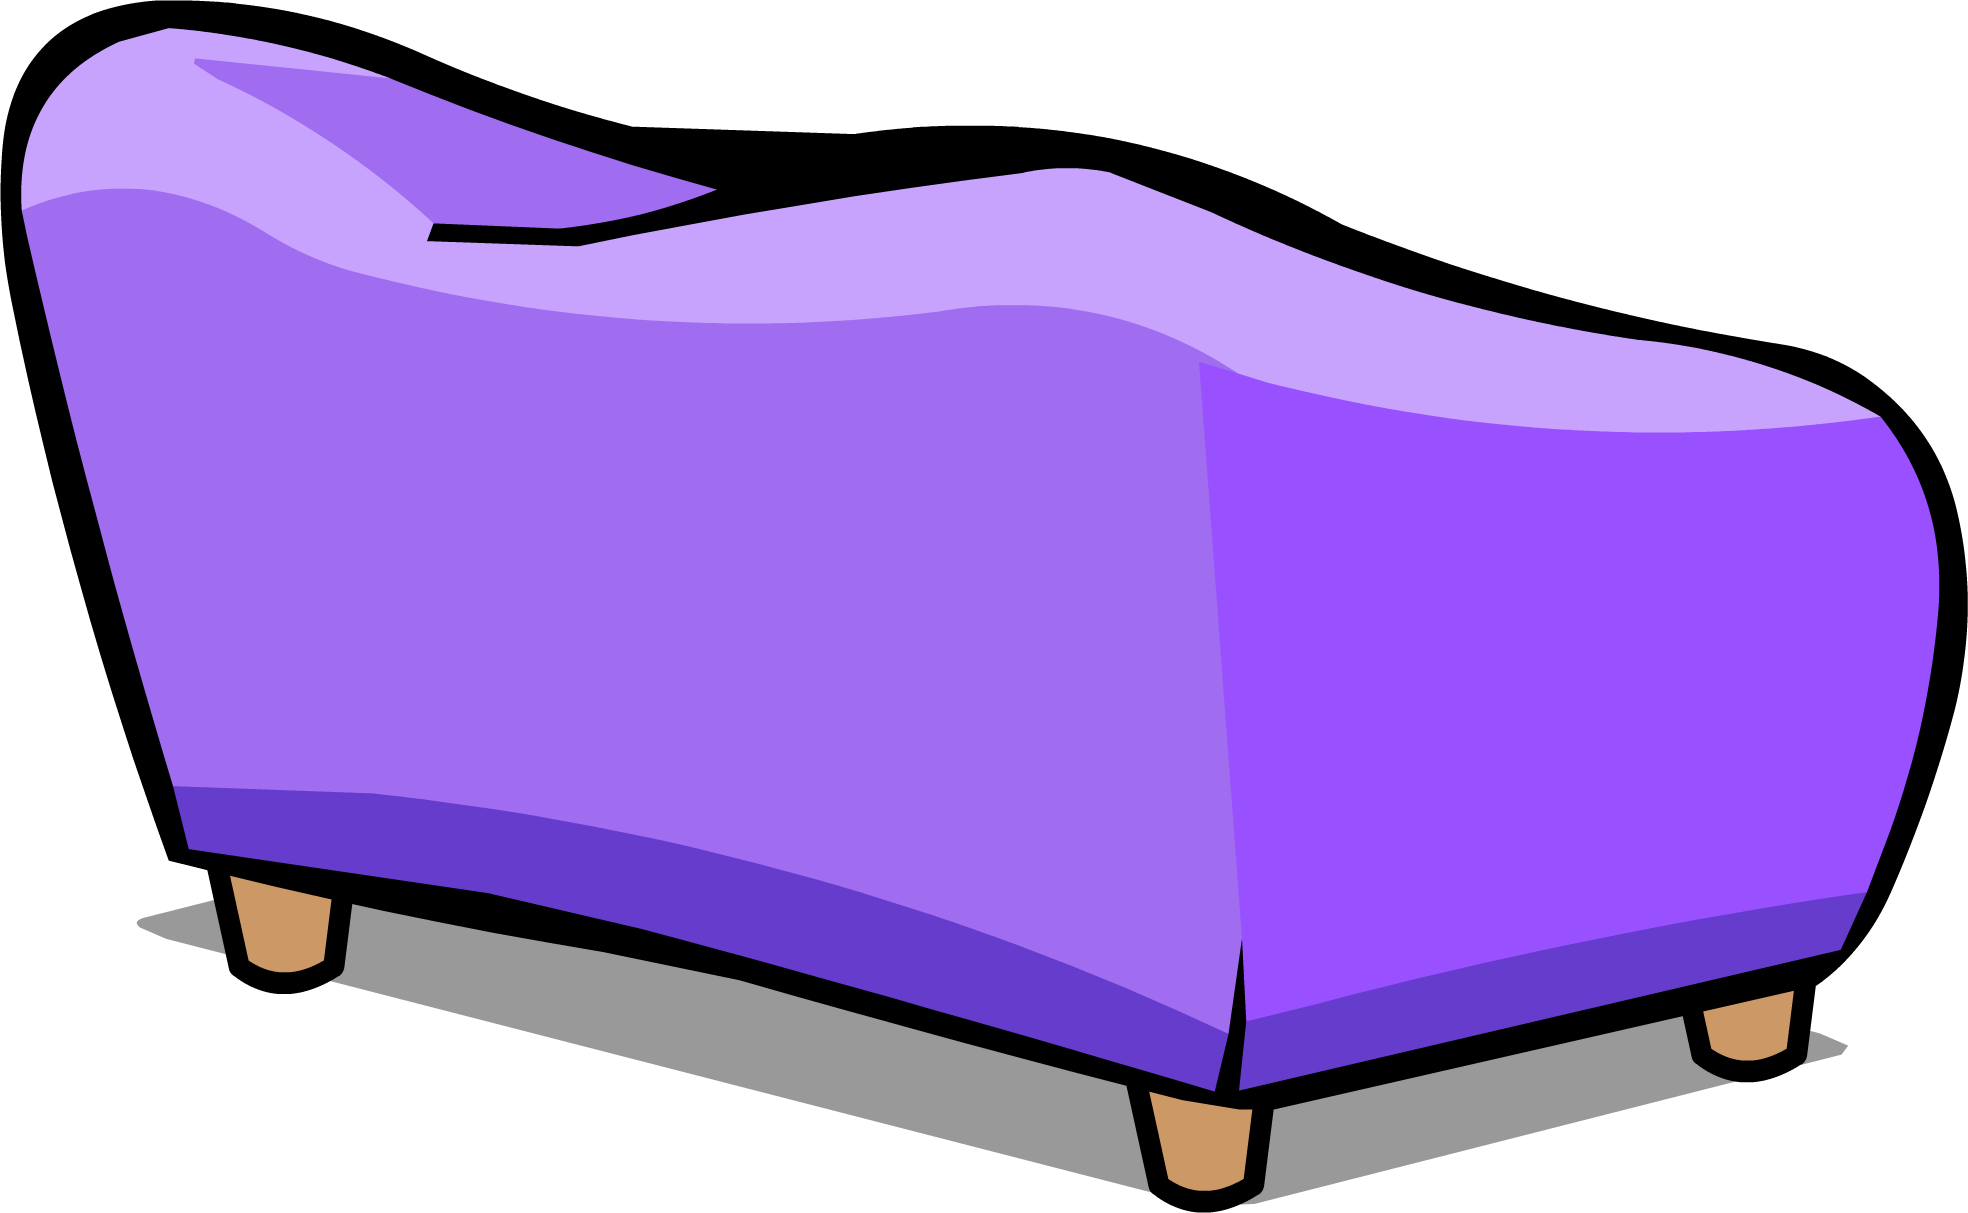 Purple couch png. Image sprite club penguin